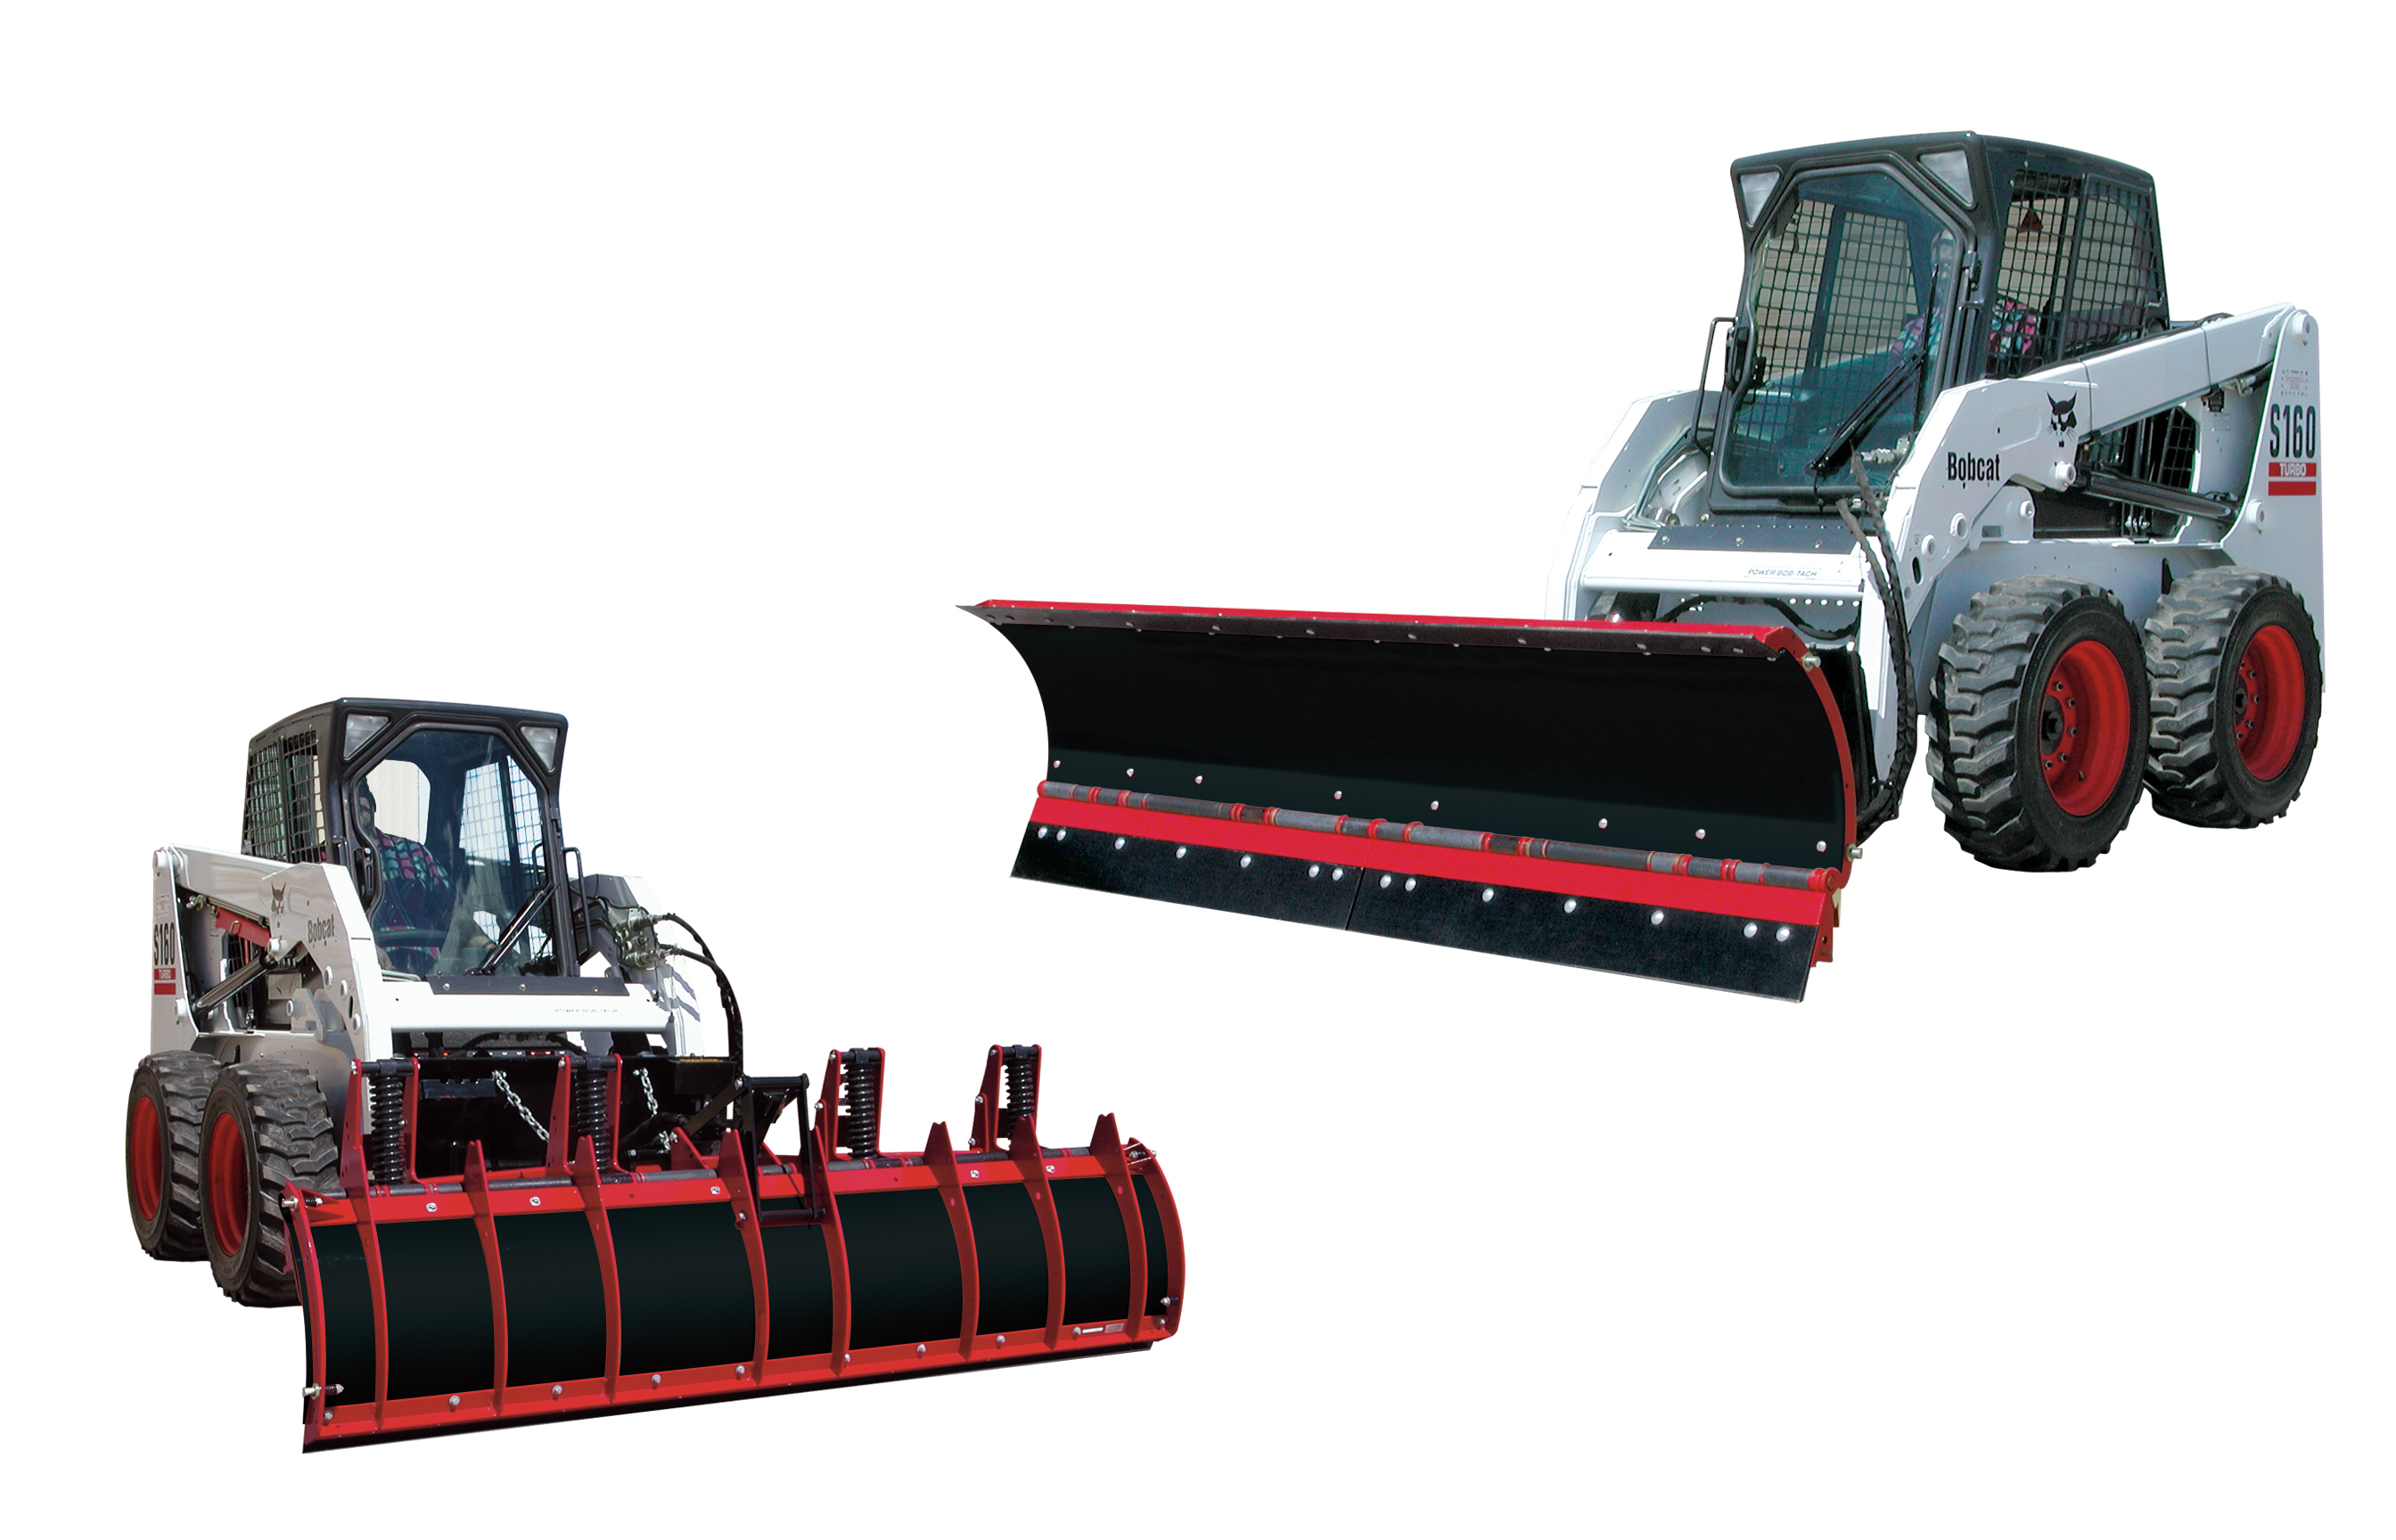 New Hiniker 9 Trip Edge with crossover relief valve Poly Snowplow, Model:2891, Skid Steer